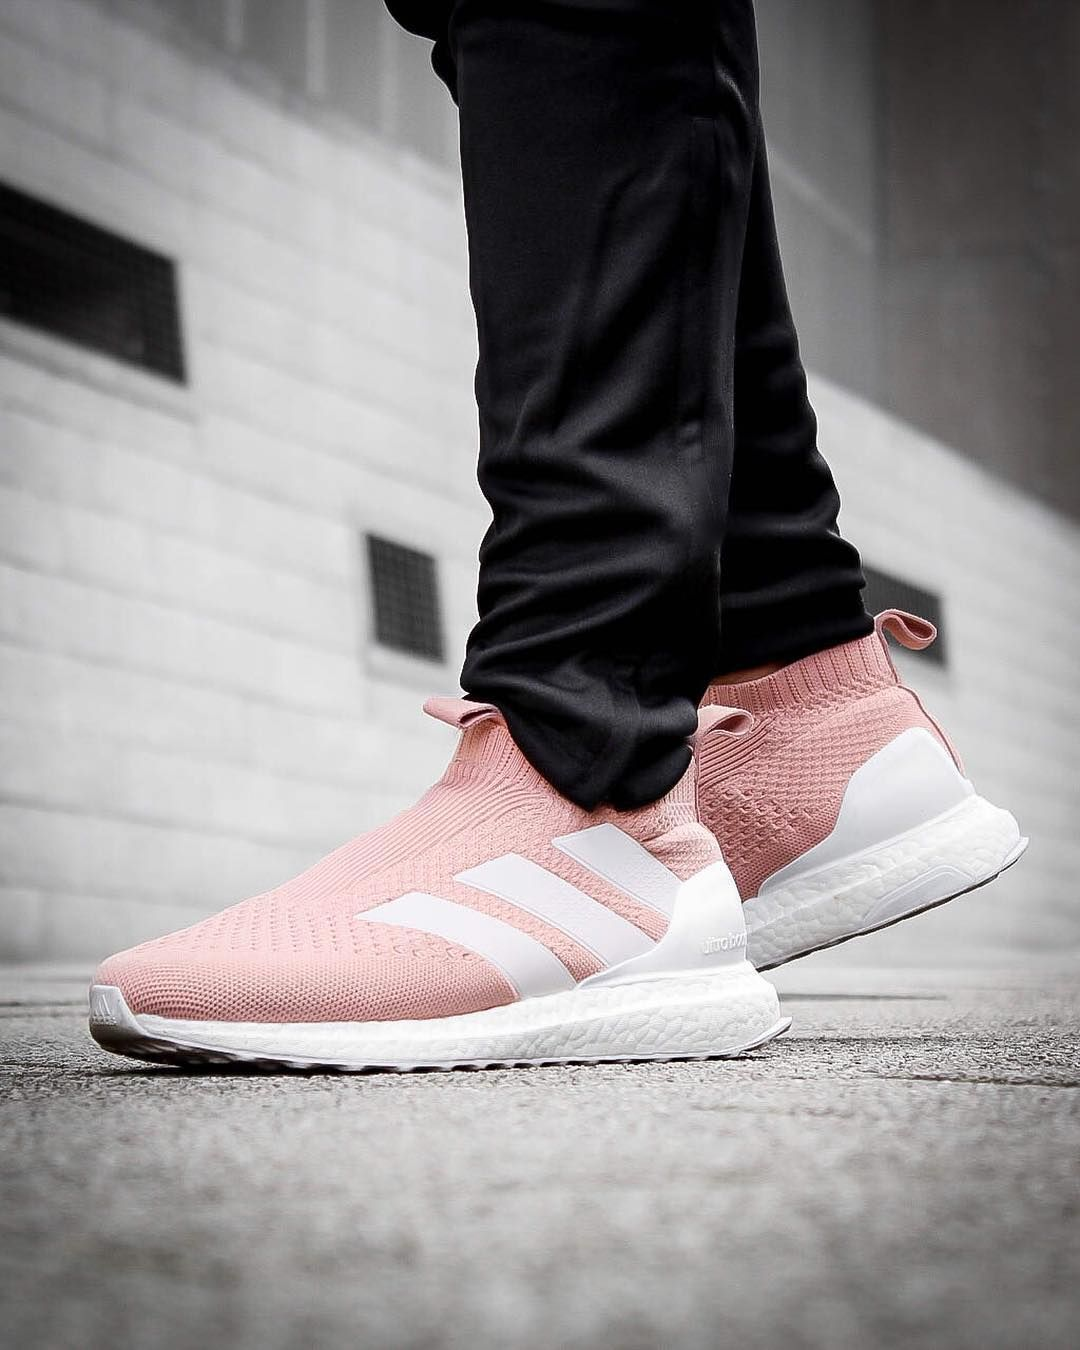 online store 67720 c44f3 KITH x adidas ACE 16 PureControl Ultra Boost